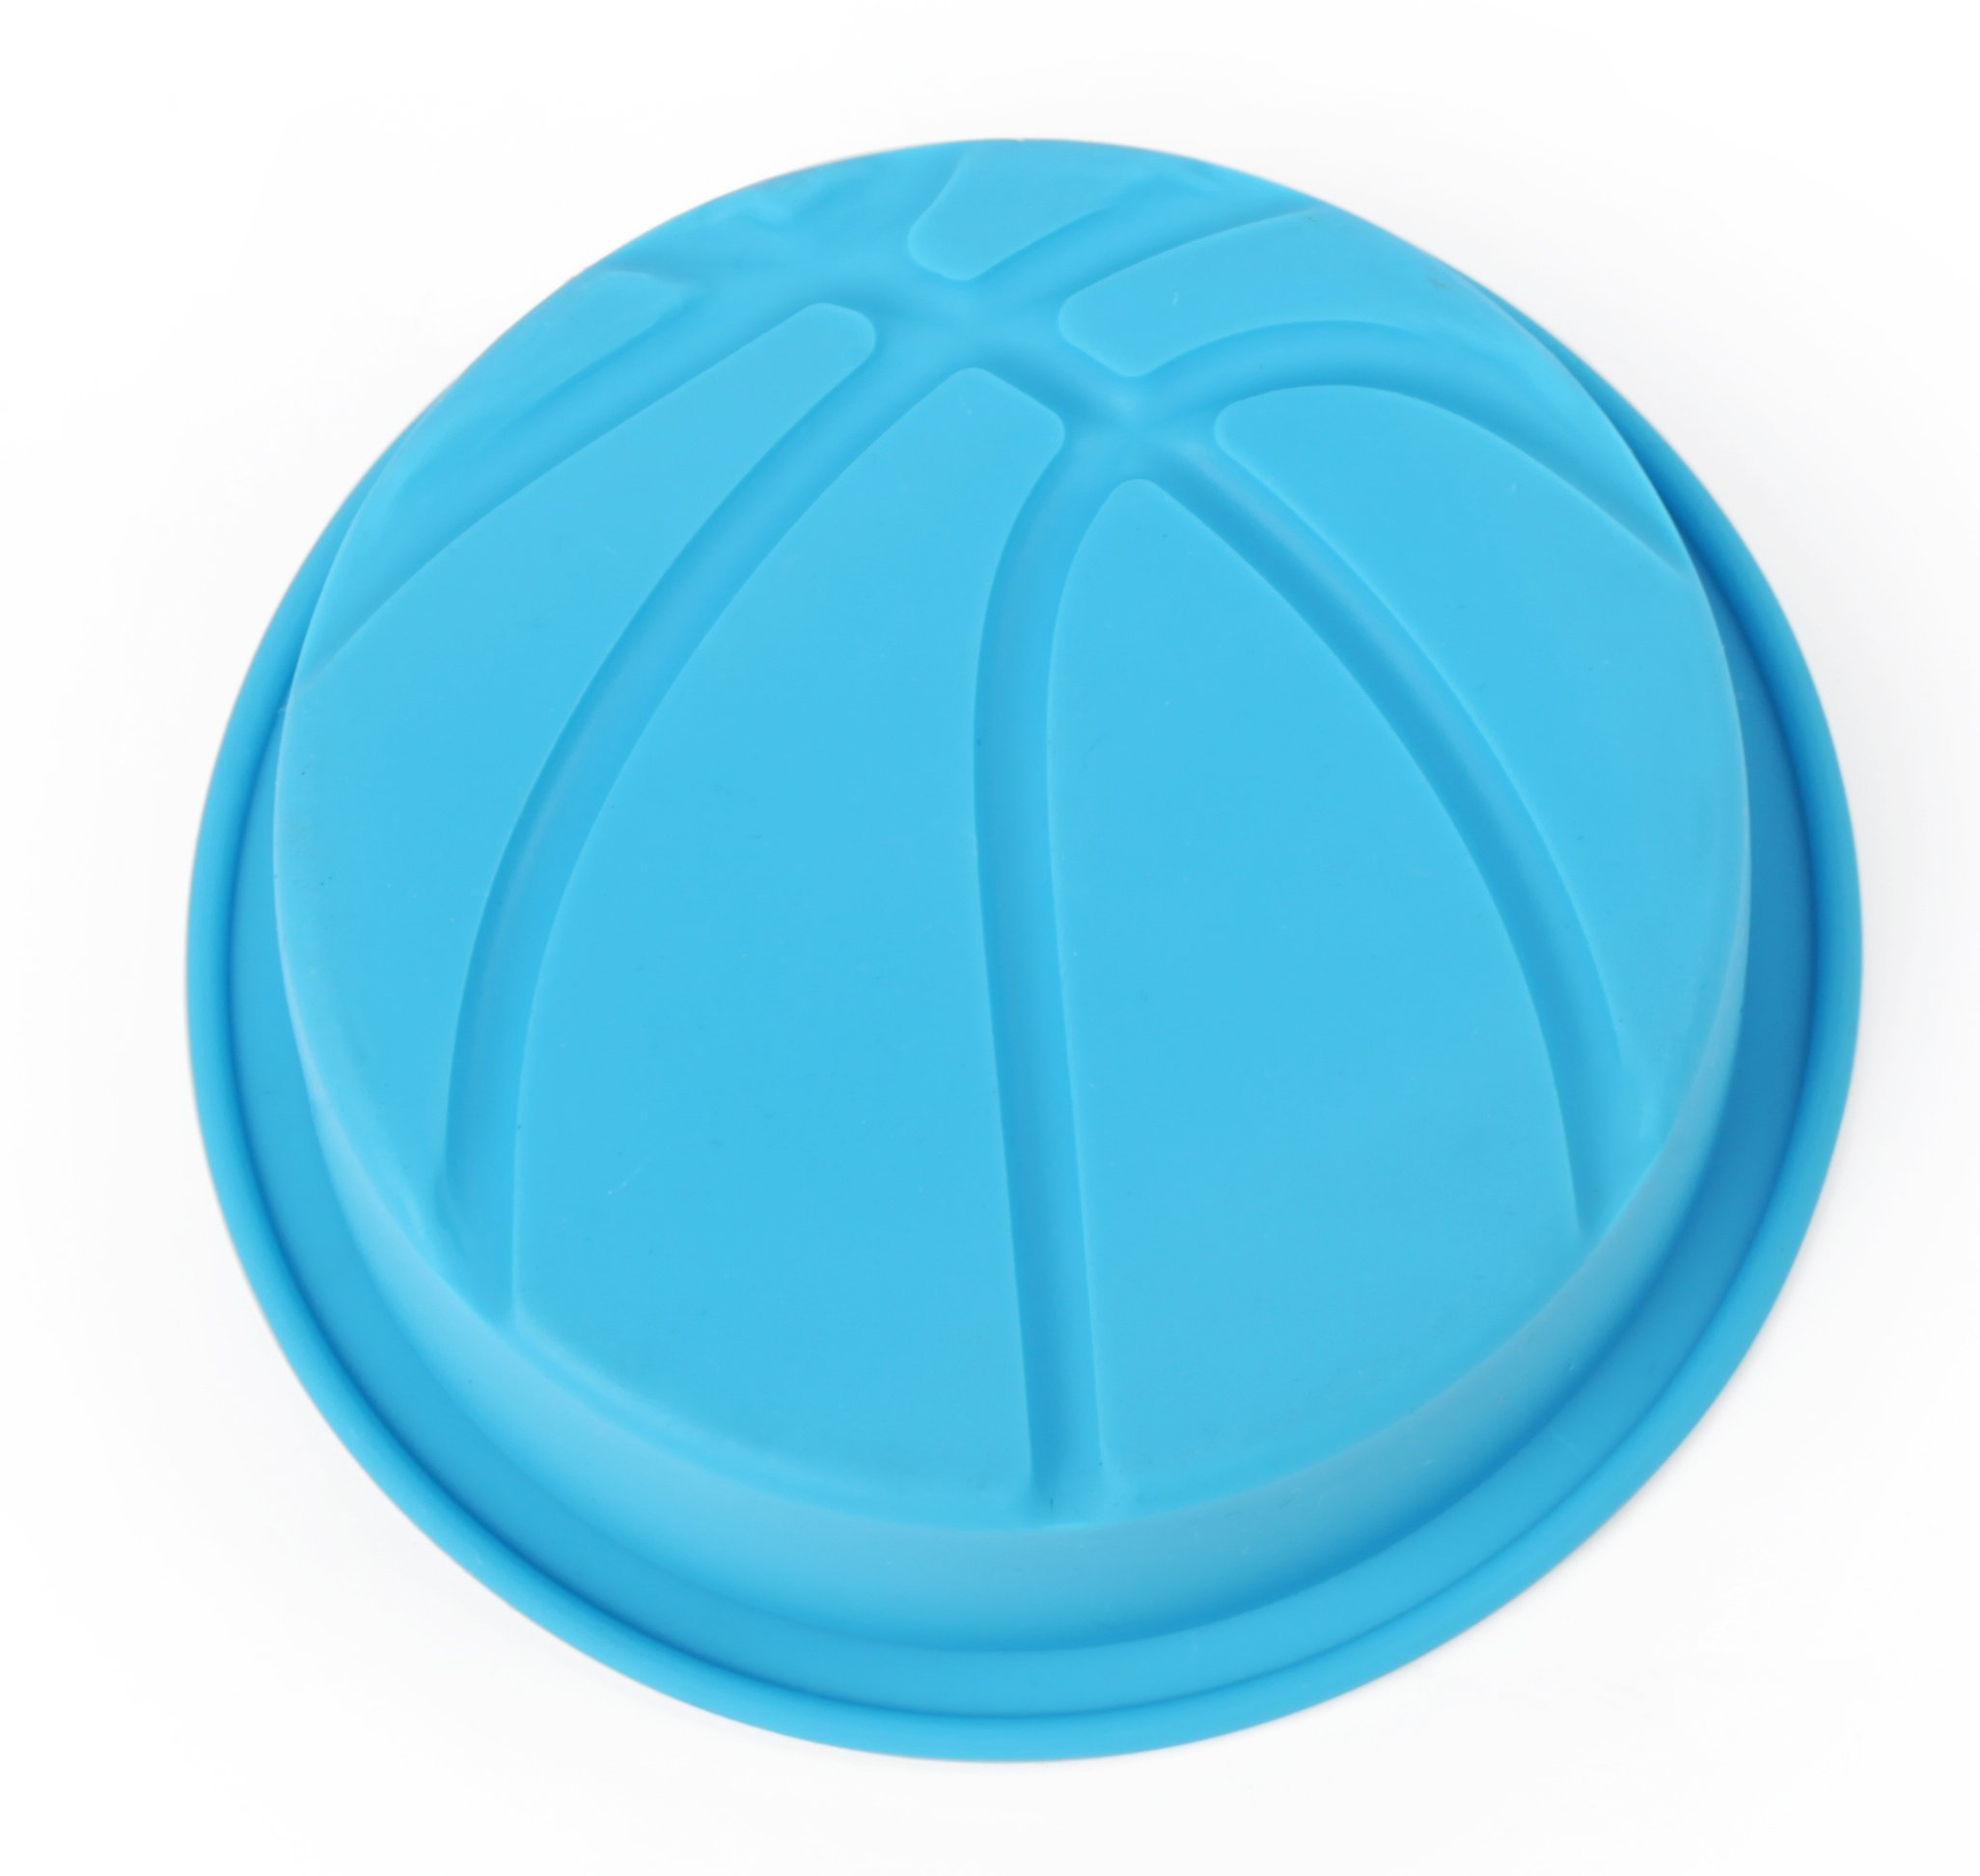 Home Value Colorful Silicone Sports Ball Set'' Soccer, Tennis, Baseball, Basketball '' Cake Mold, Assorted Colors (HVCOOKIECUTSC09) by Value Home (Image #3)